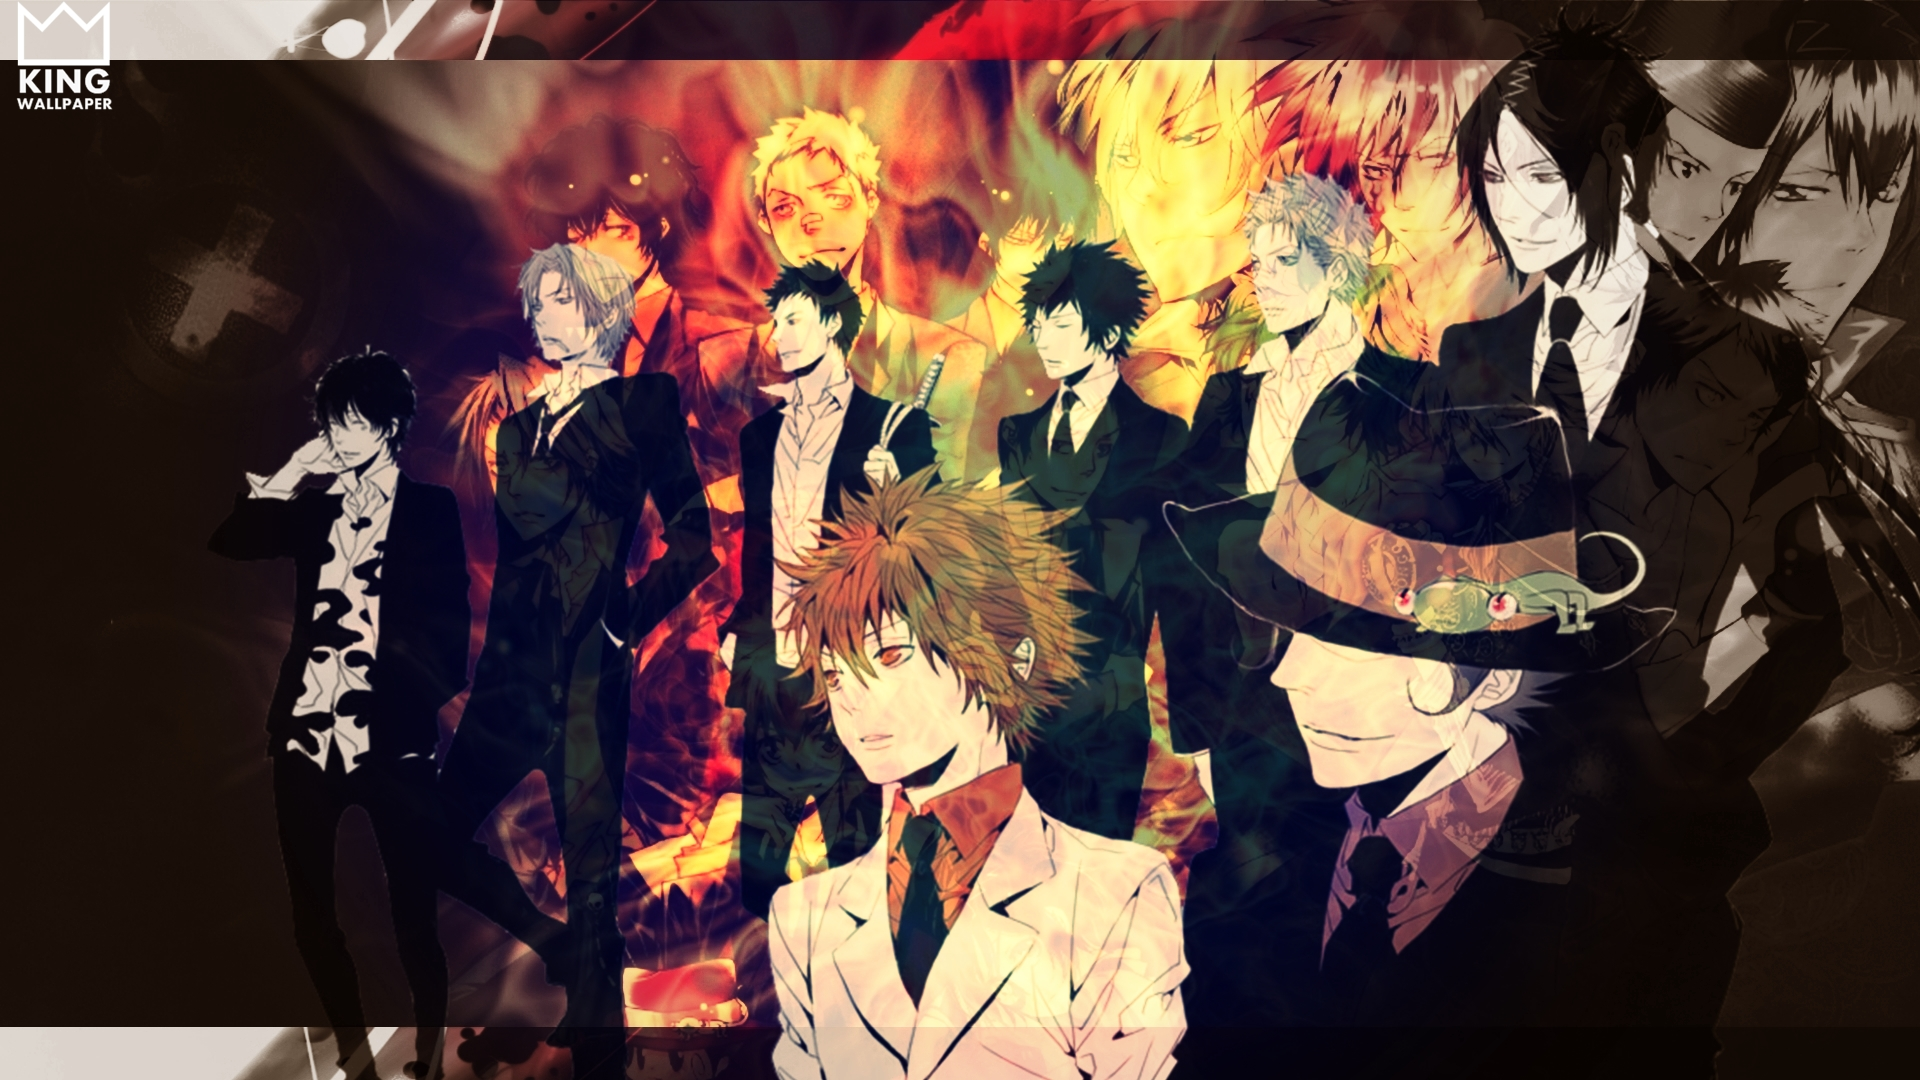 Katekyo Hitman Reborn Wallpaper by Kingwallpaper 1920x1080